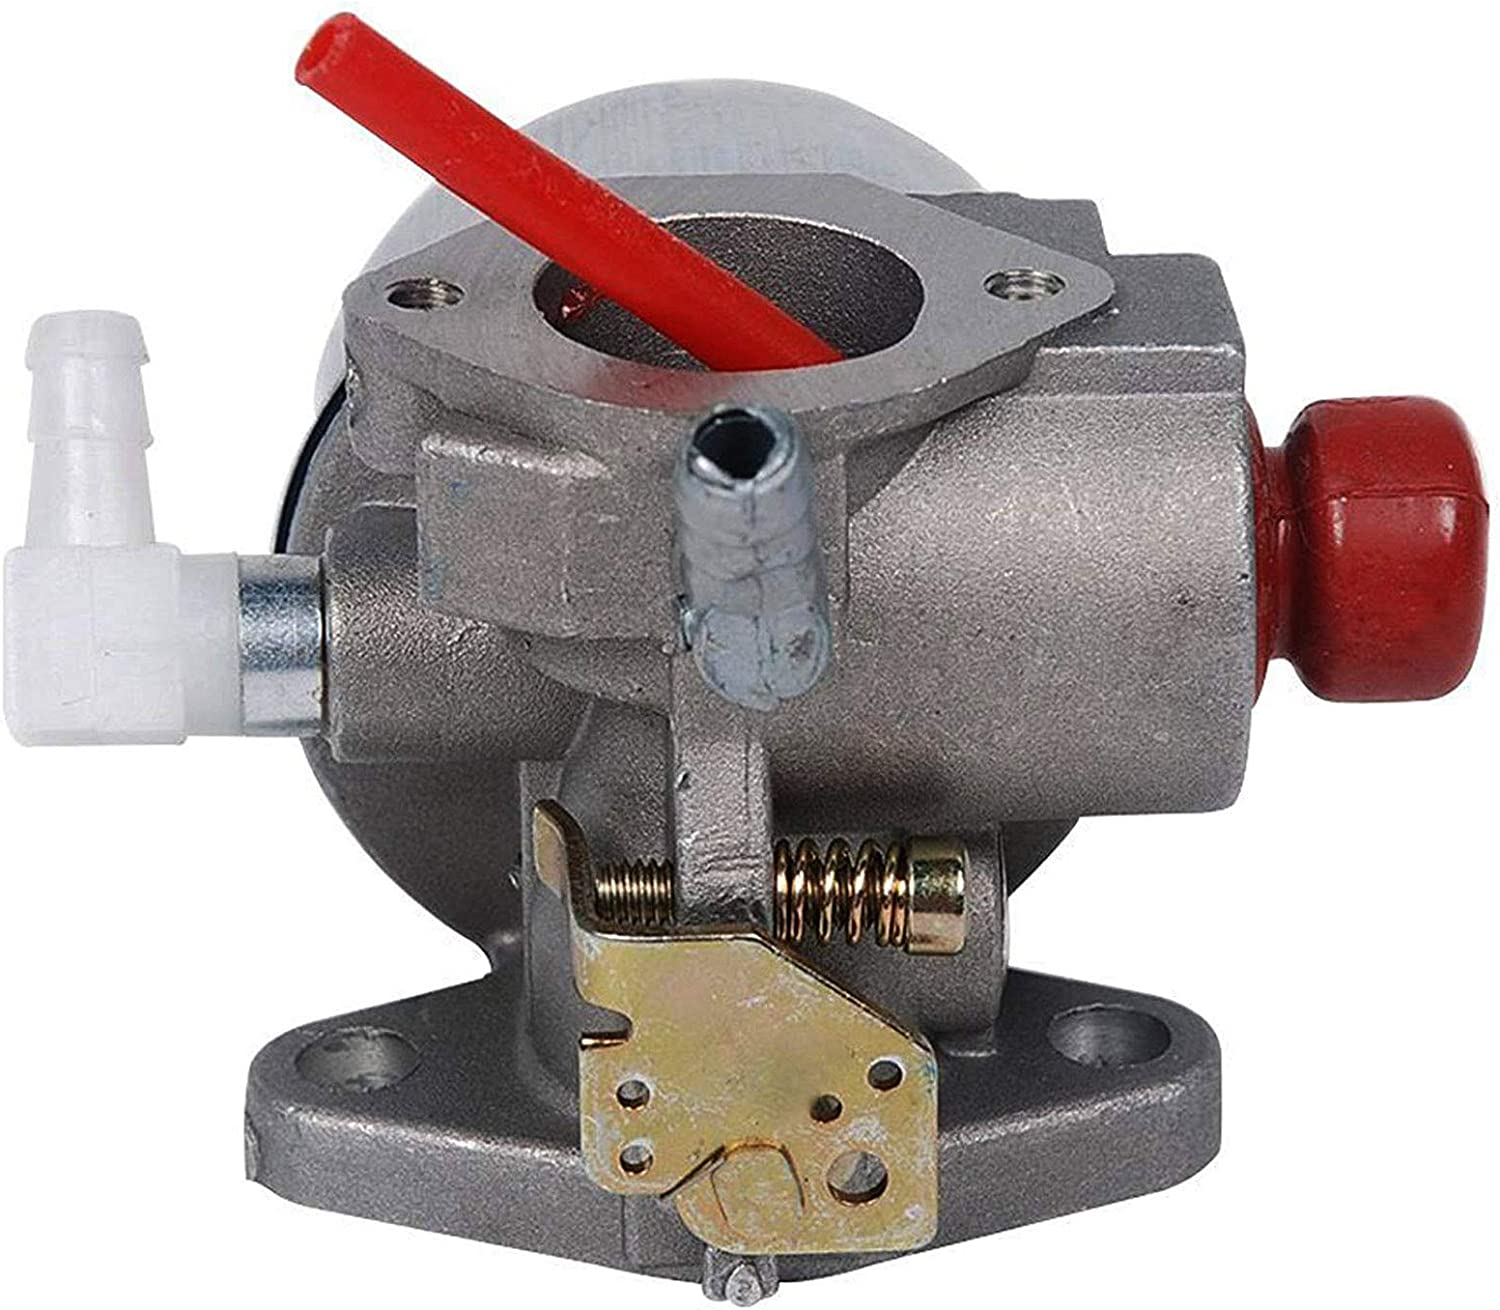 PROCOMPANY Carburetor for Tecumseh Models LEV115-350164E LEV115-350168E LEV115-350173E Engines